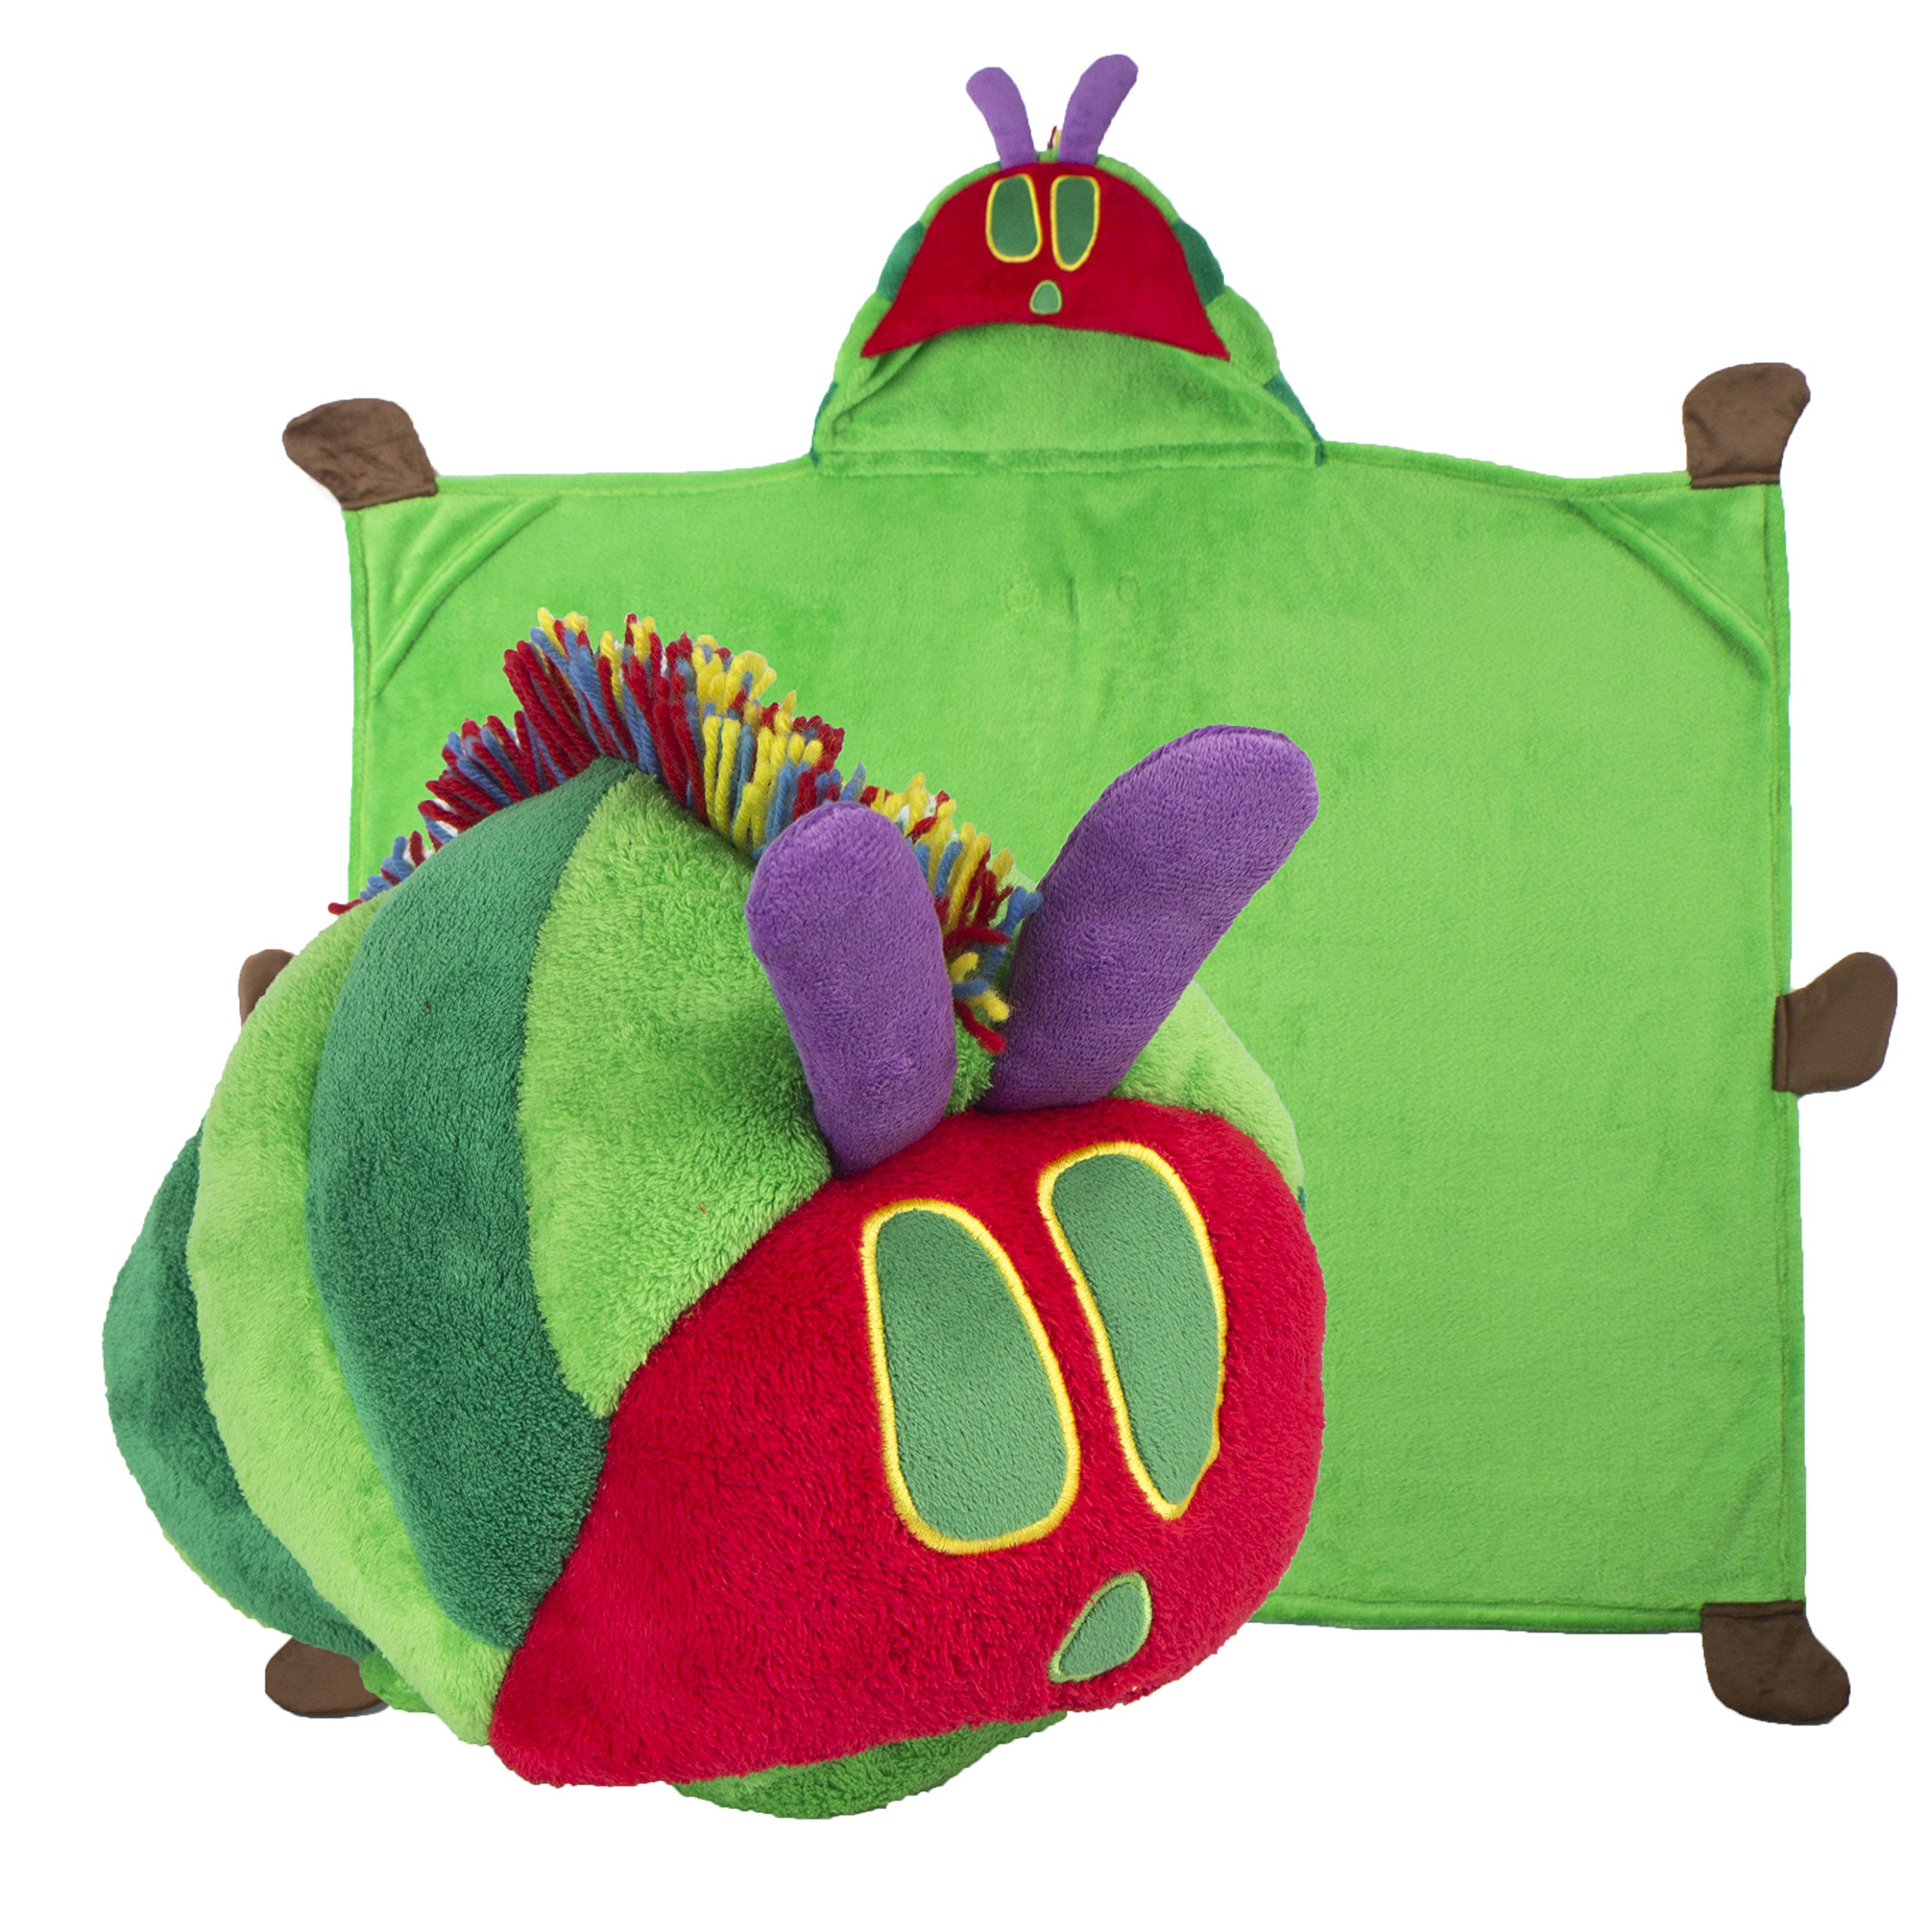 Comfy Critters Stuffed Animal Blanket - The World of Eric Carle, The Very Hungry Caterpillar - Kids Huggable Pillow and Blanket Perfect for Pretend Play, Travel, nap time. by Comfy Critters